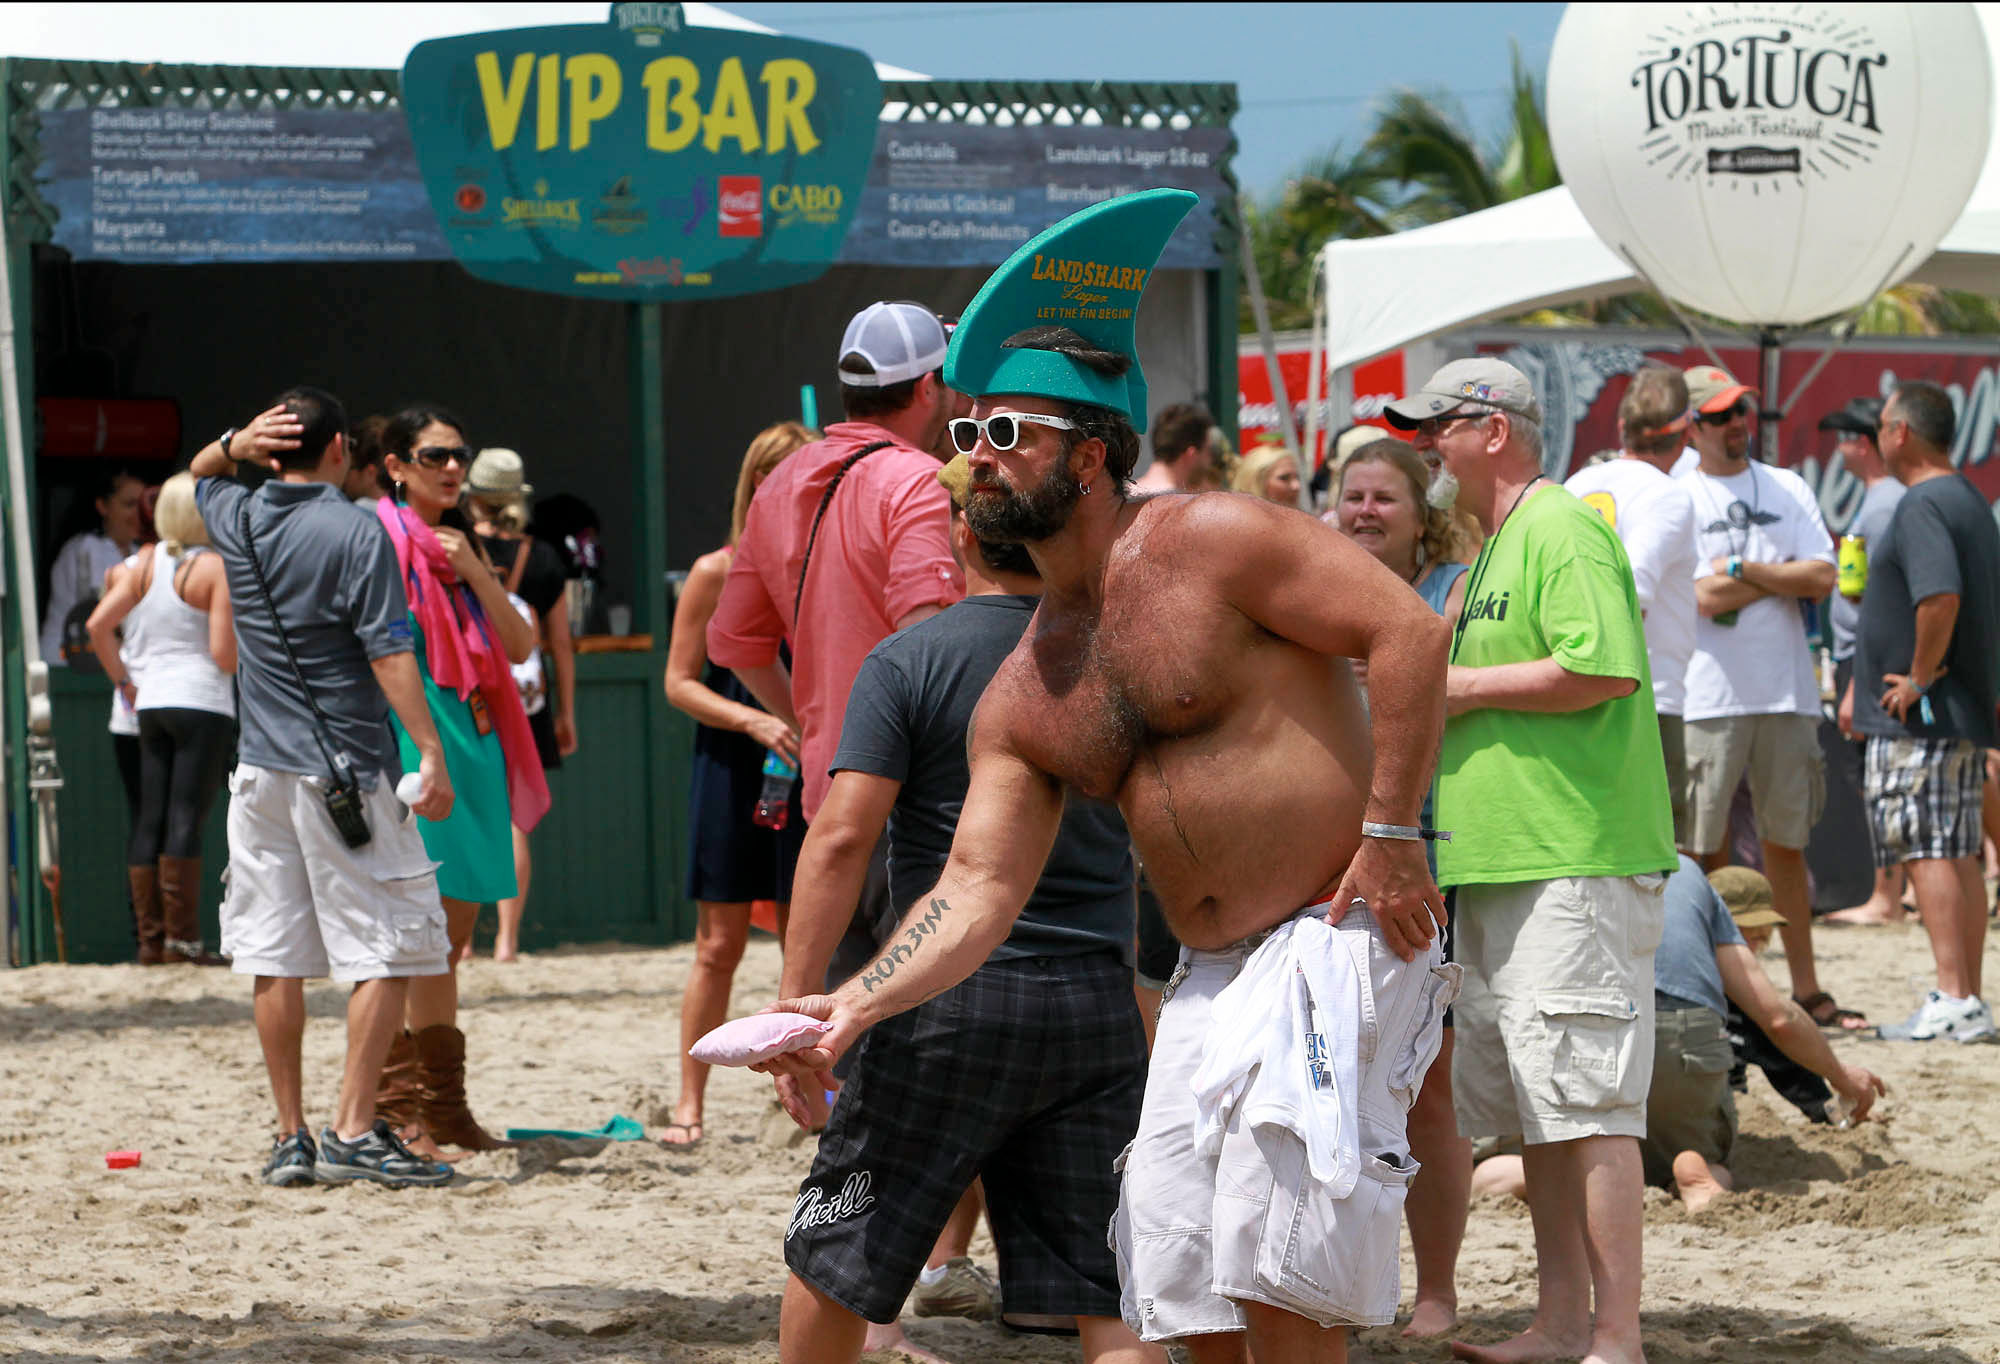 PHOTOS: 2013 Tortuga Music Festival - Music on the beach